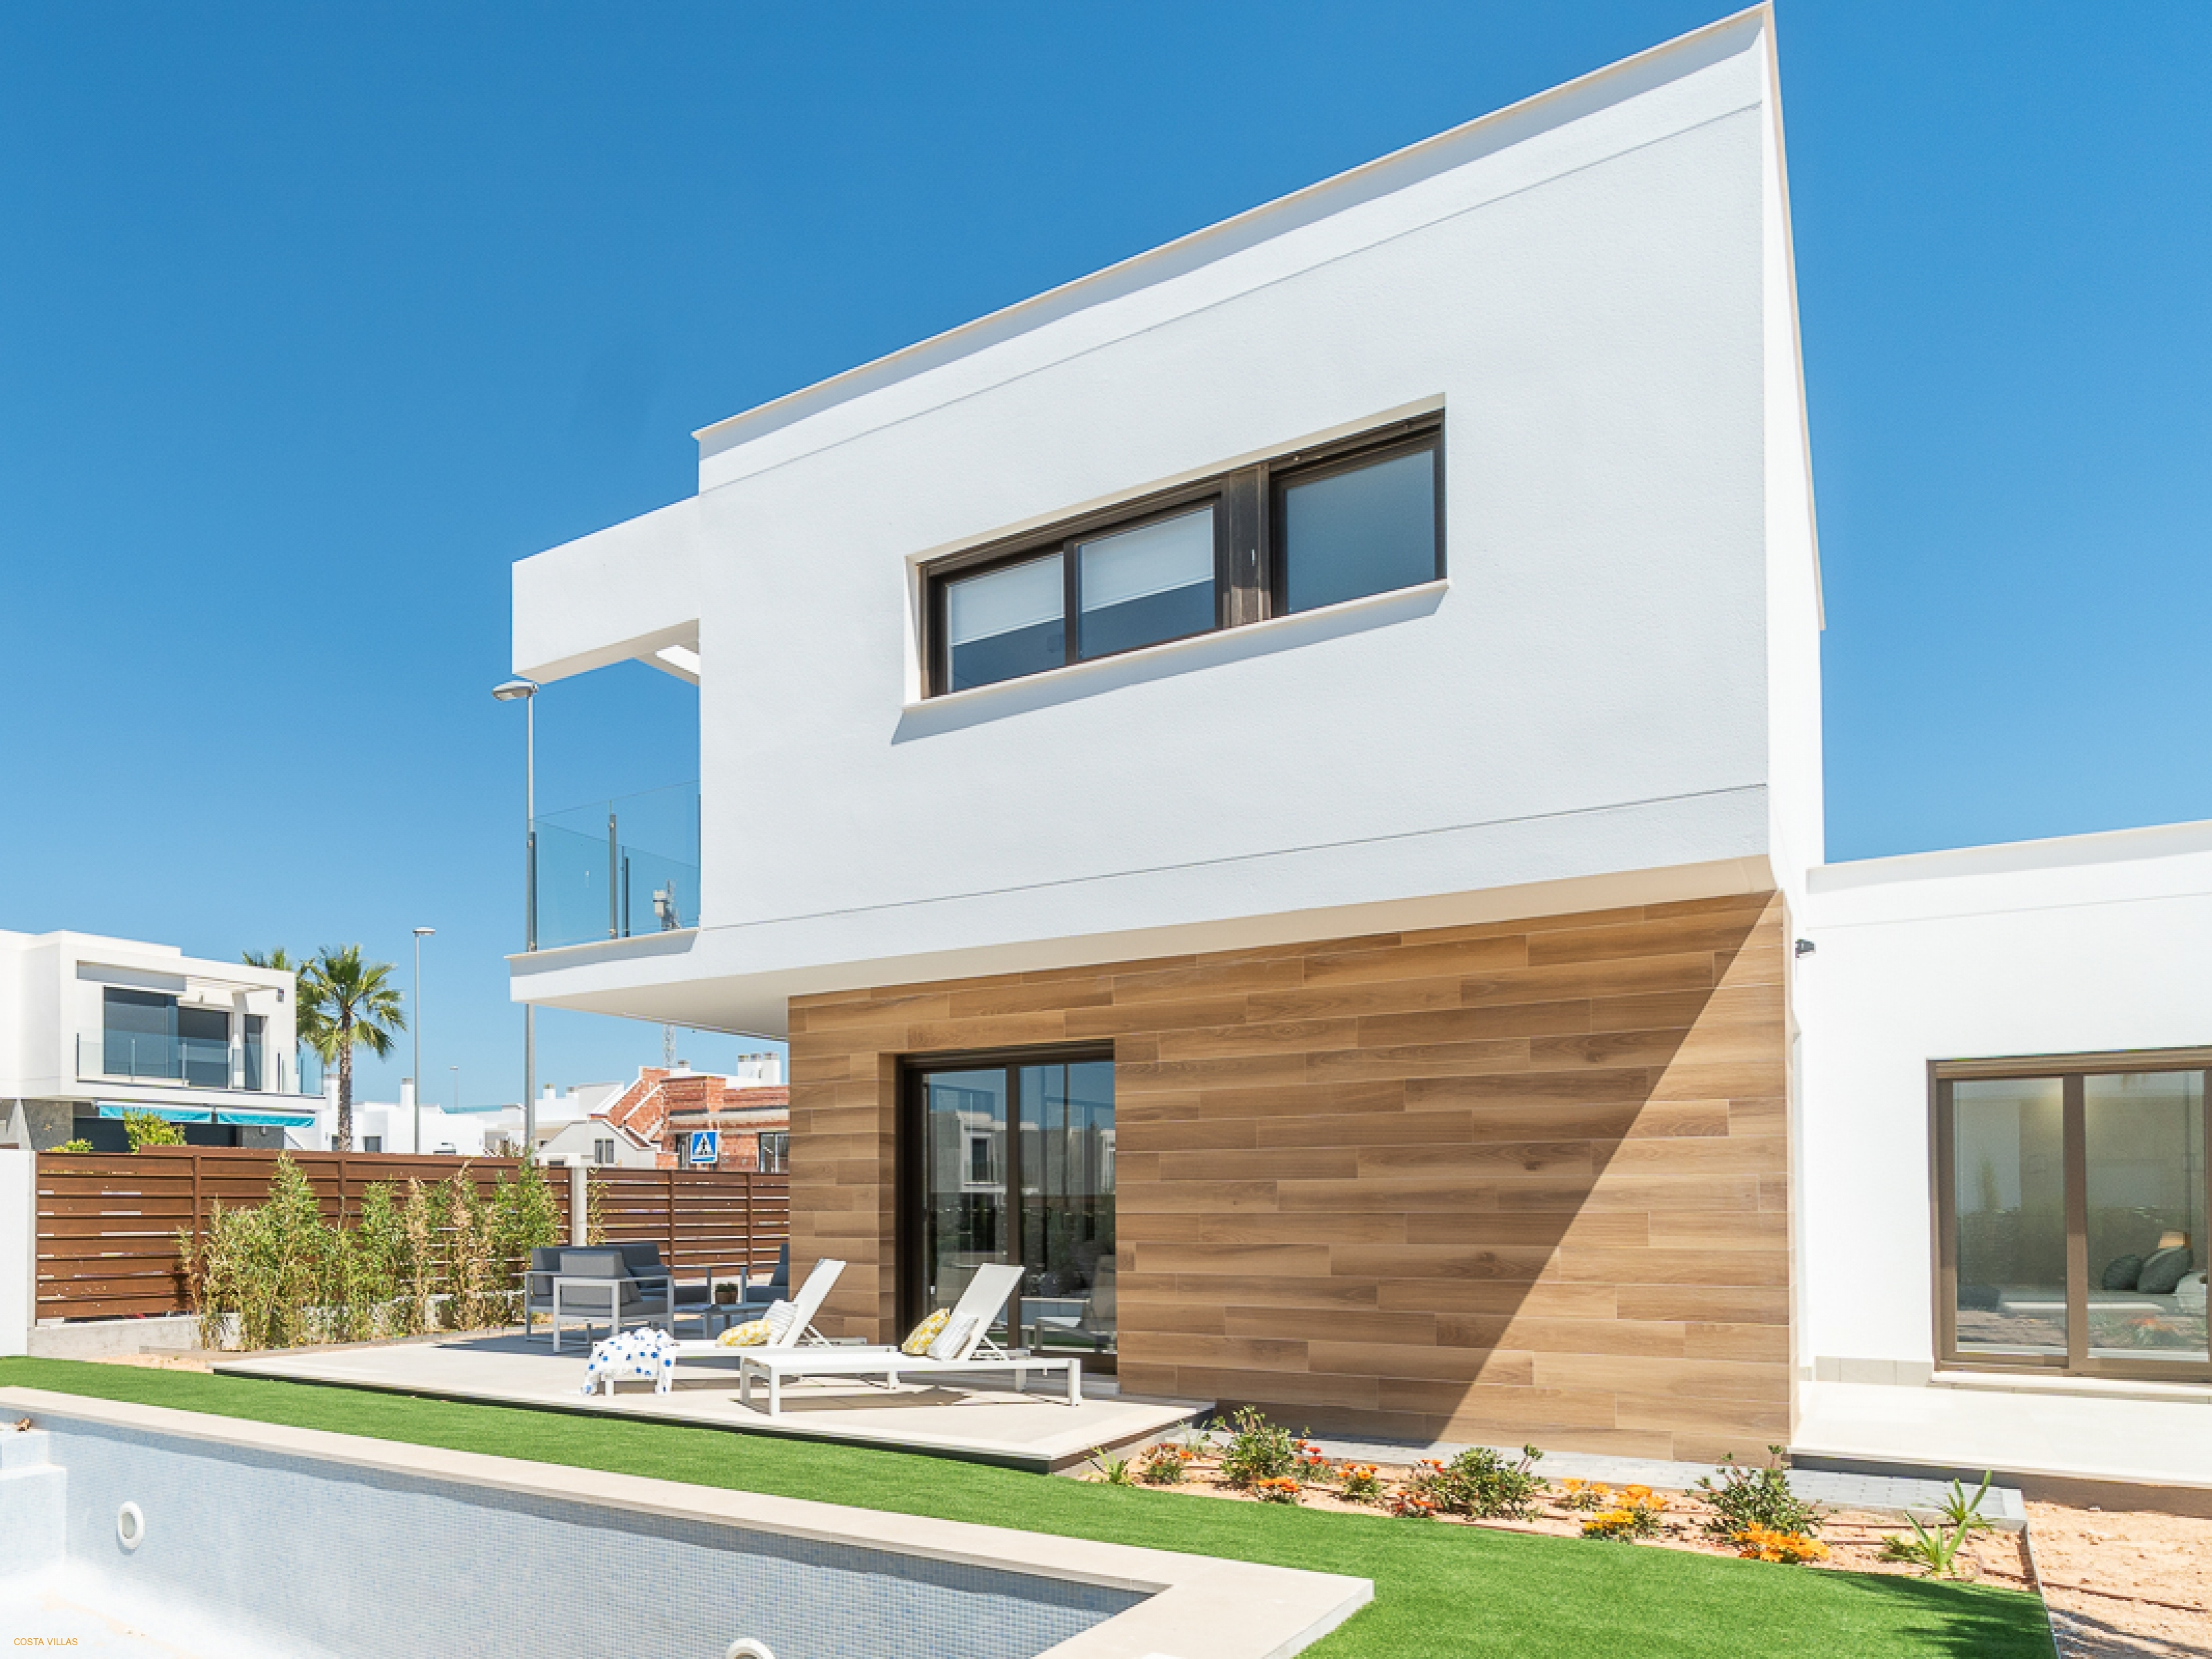 New key ready detached villas with private pools